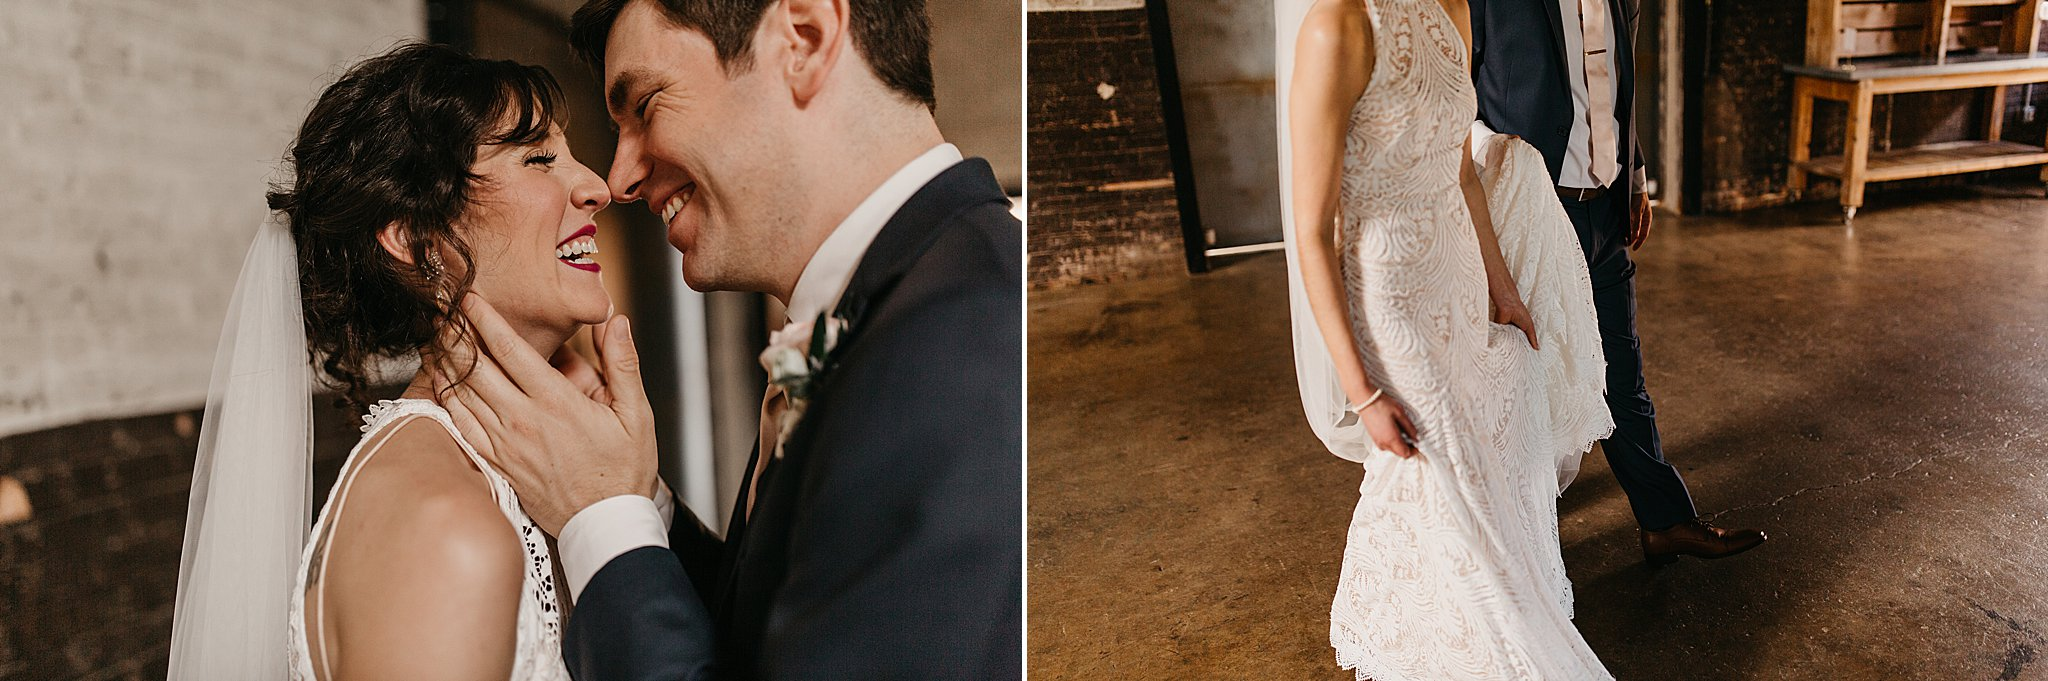 Wilderlove Co_Wedding Photographer_Industrial Wedding_Jewish Wedding_Dallas Texas Wedding_Brake & Clutch Warehouse_North Texas Photographer_0023.jpg